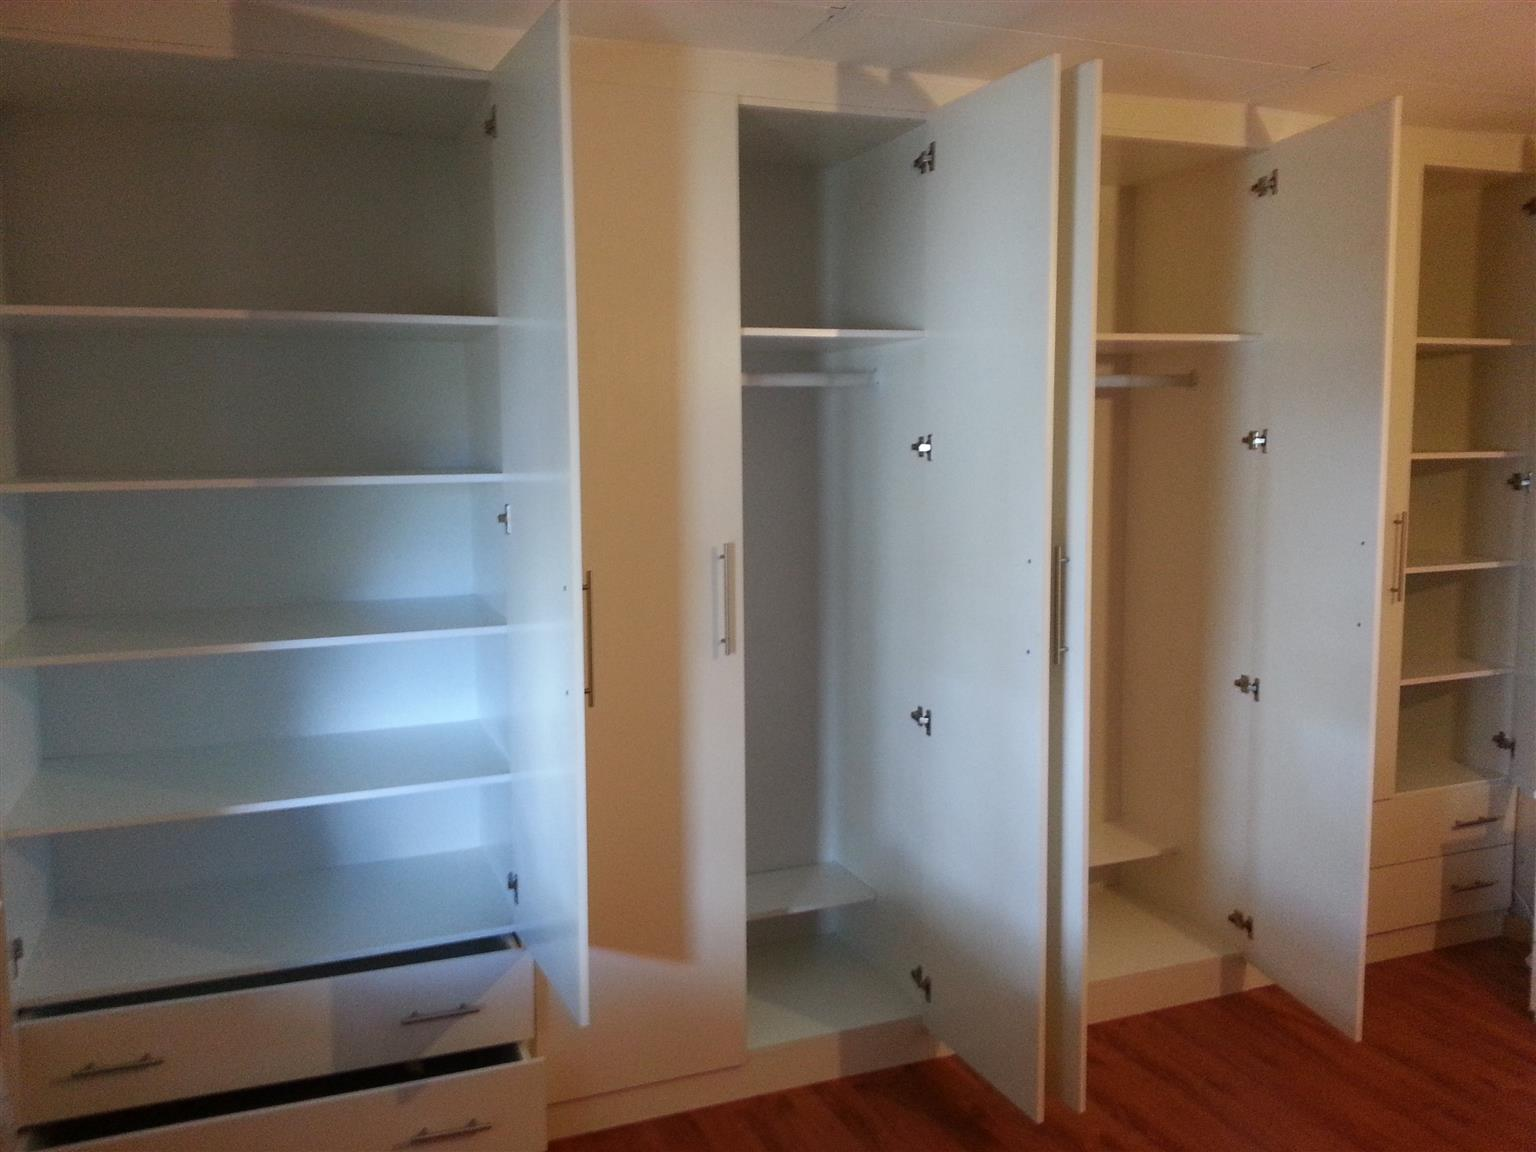 fitted make bedroom how adorable nursery uk glamorous doors wardrobes idea look to frame wardrobe and better cupboards best sliding wardr ideas closets cupboard about with youtube in trend alcoves diy built baby